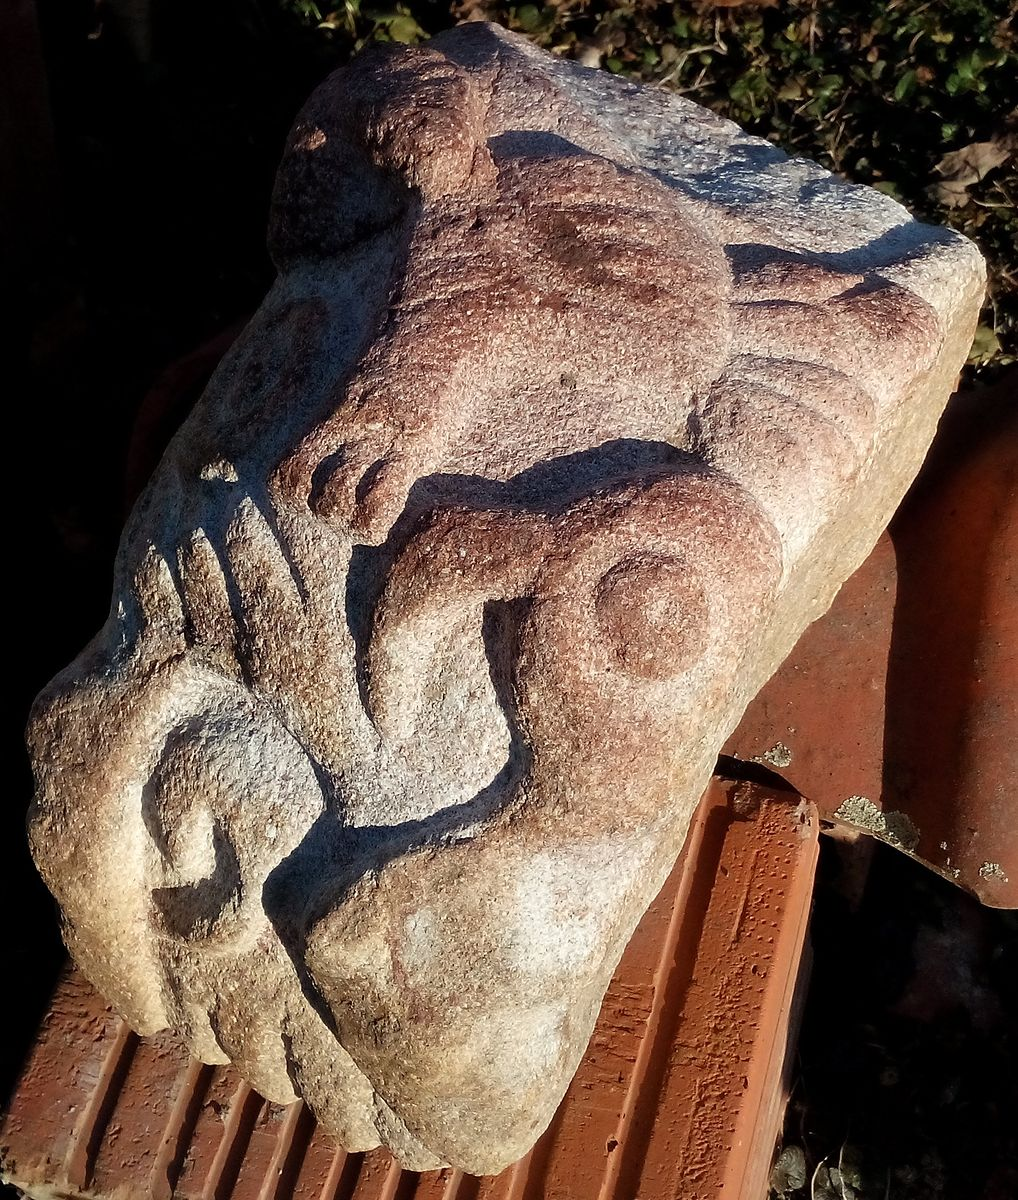 An unusual stone with relief